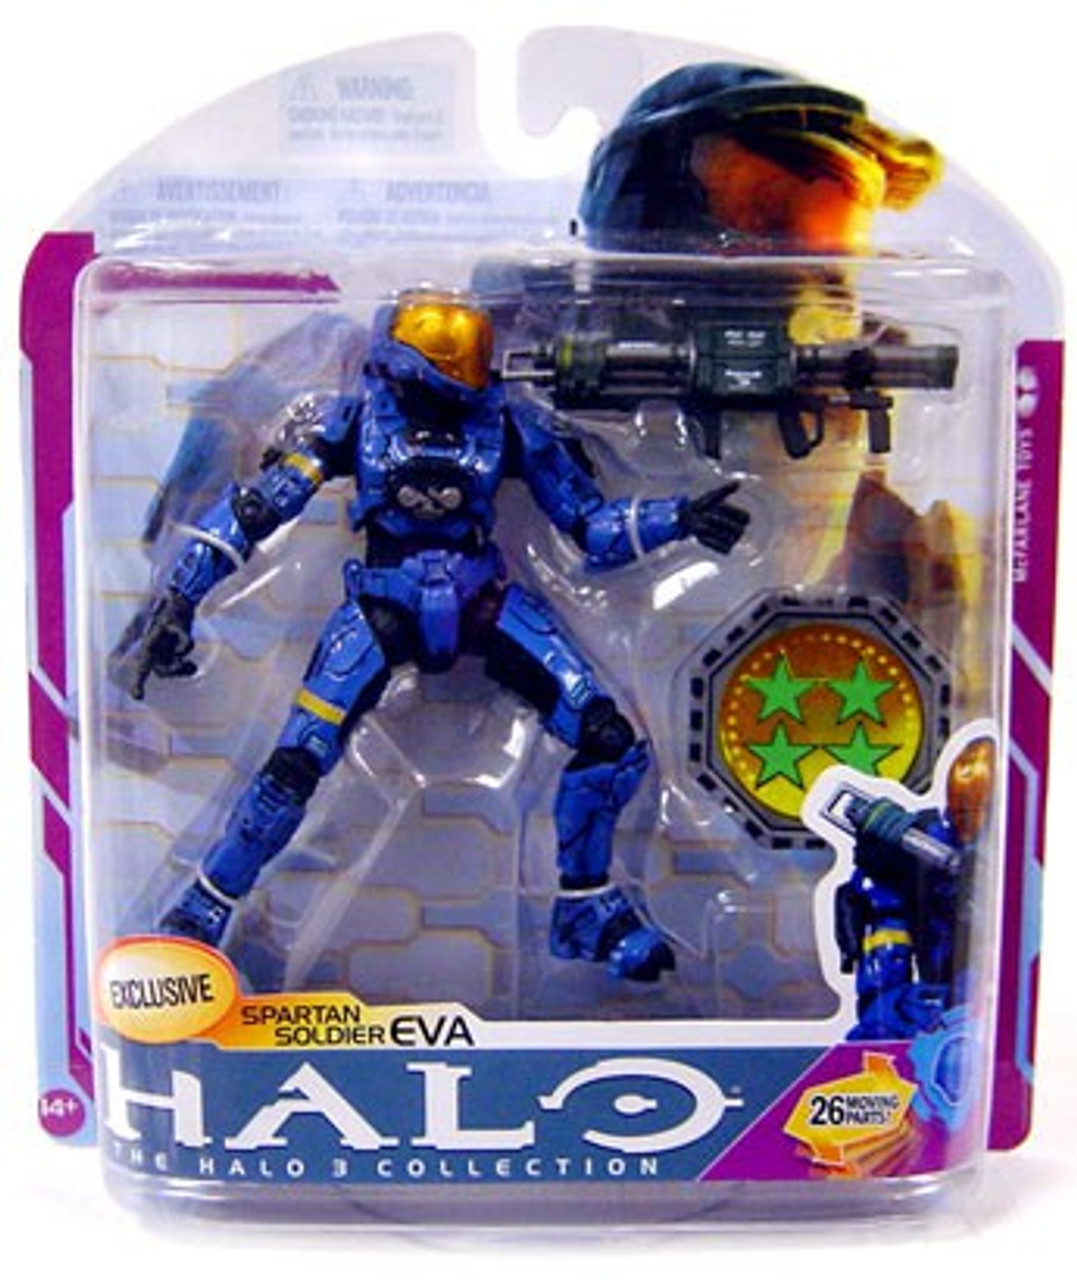 McFarlane Toys Halo 3 Series 6 Medal Edition Spartan Soldier EVA Exclusive Action Figure [Blue]